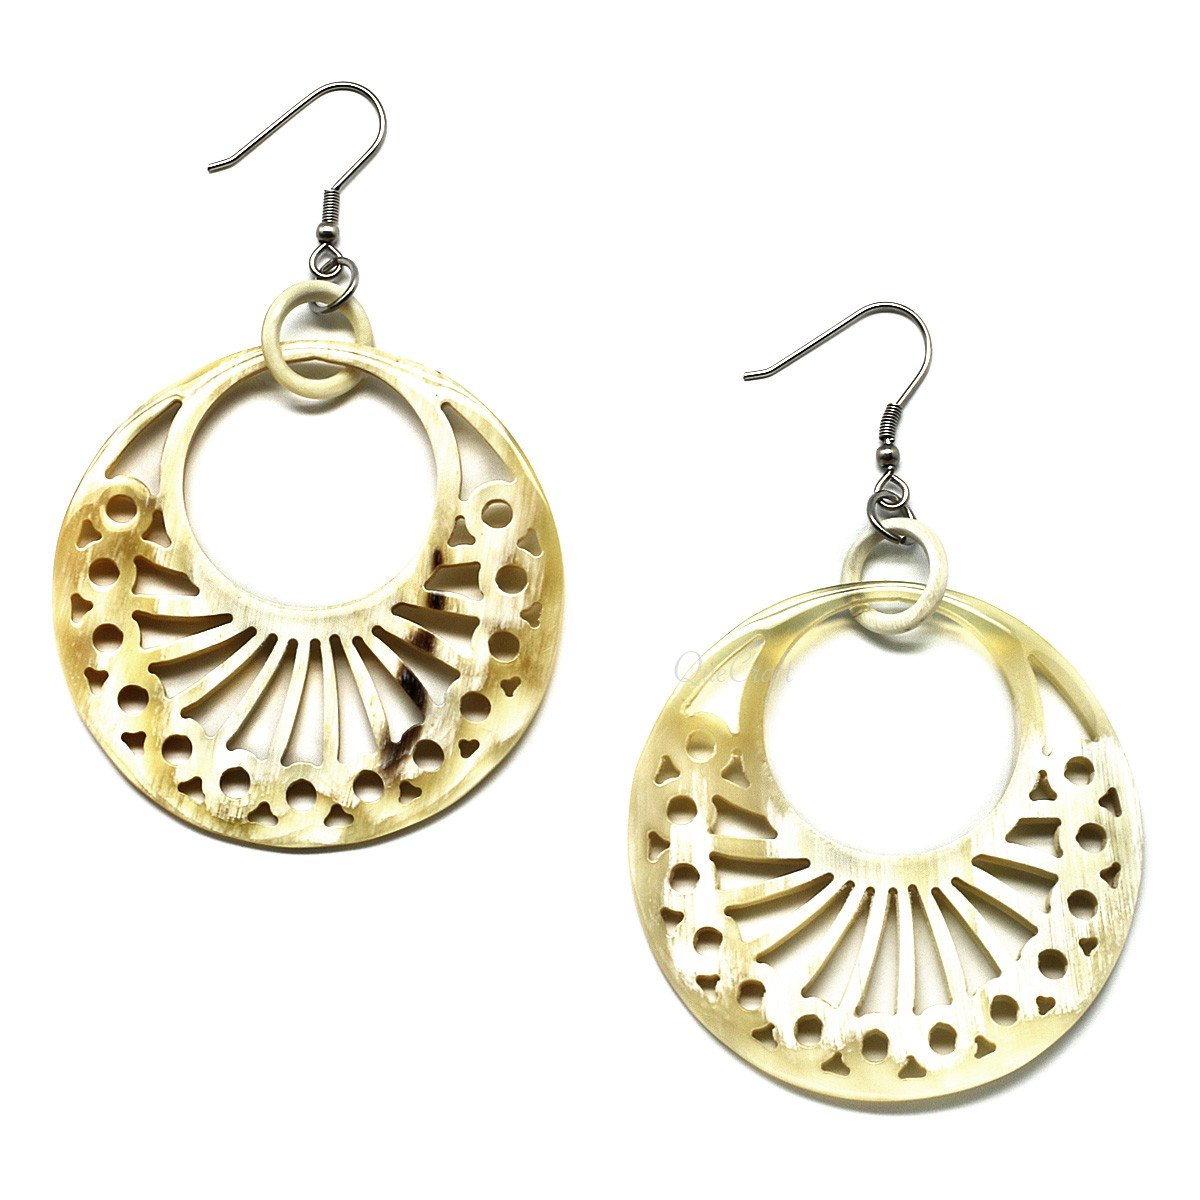 Horn Earrings #6138 - HORN.JEWELRY